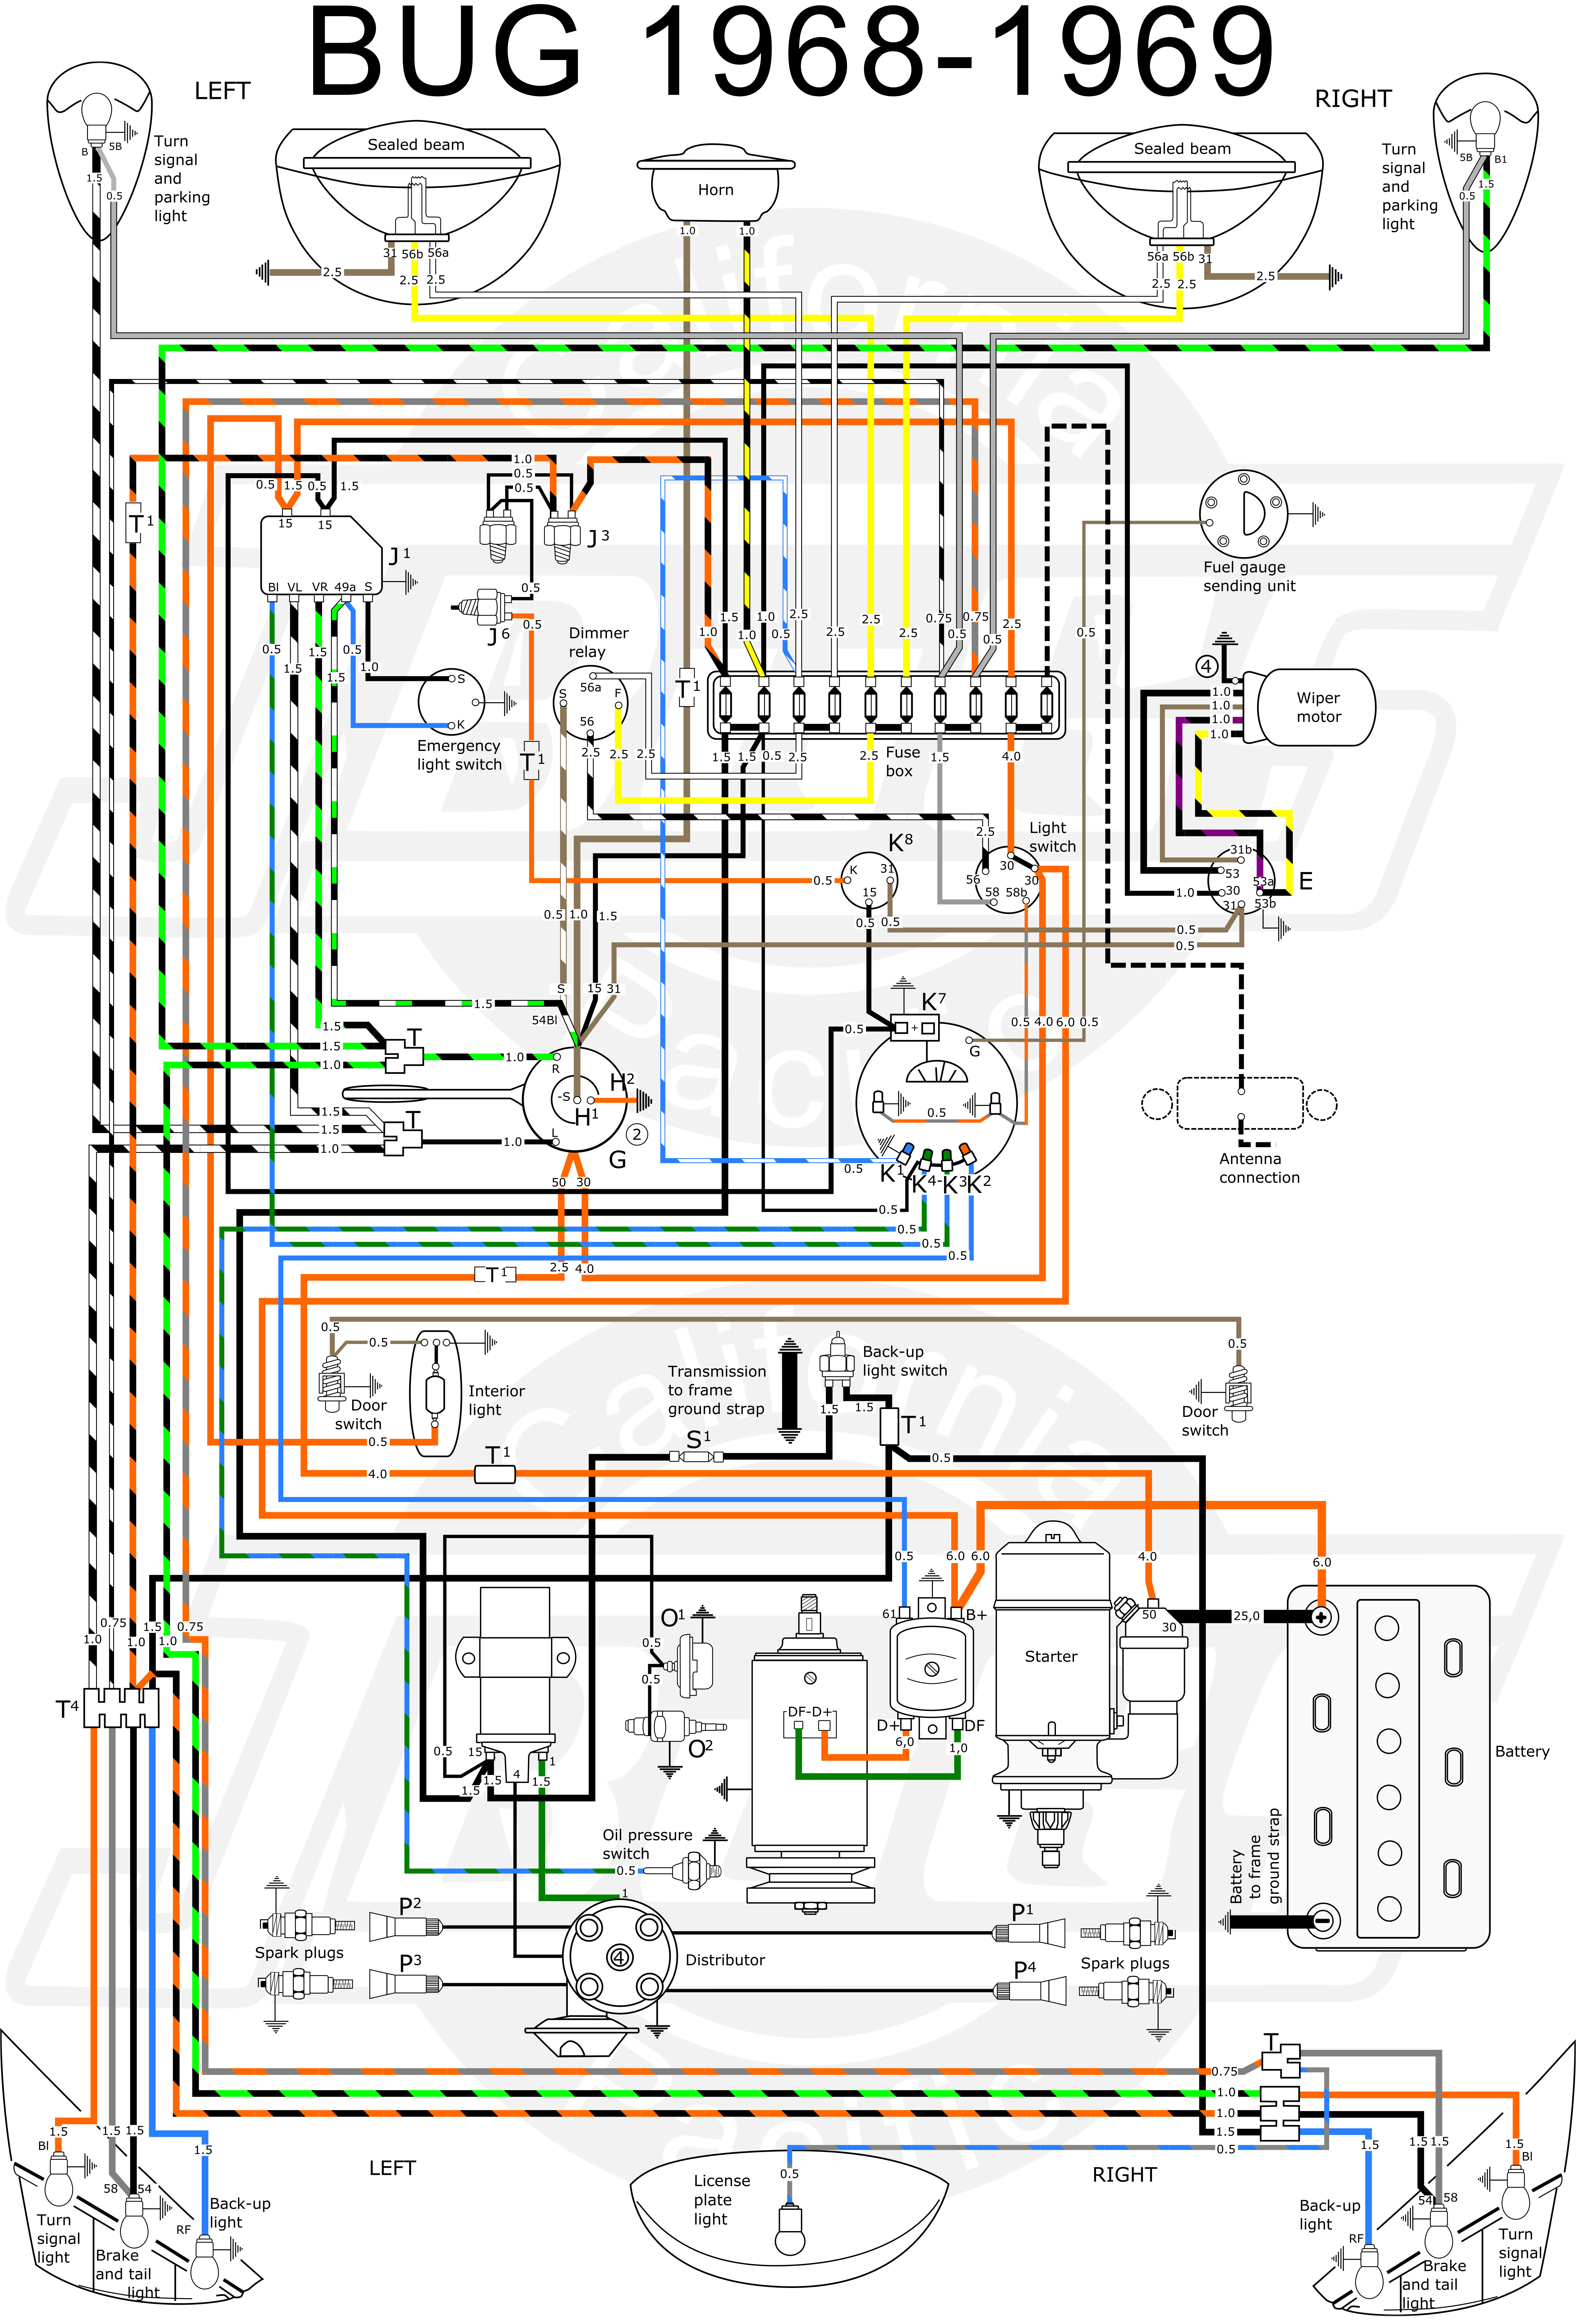 1968 vw engine diagram wiring librarydimmer switch wiring diagram for 2005 chevy impala